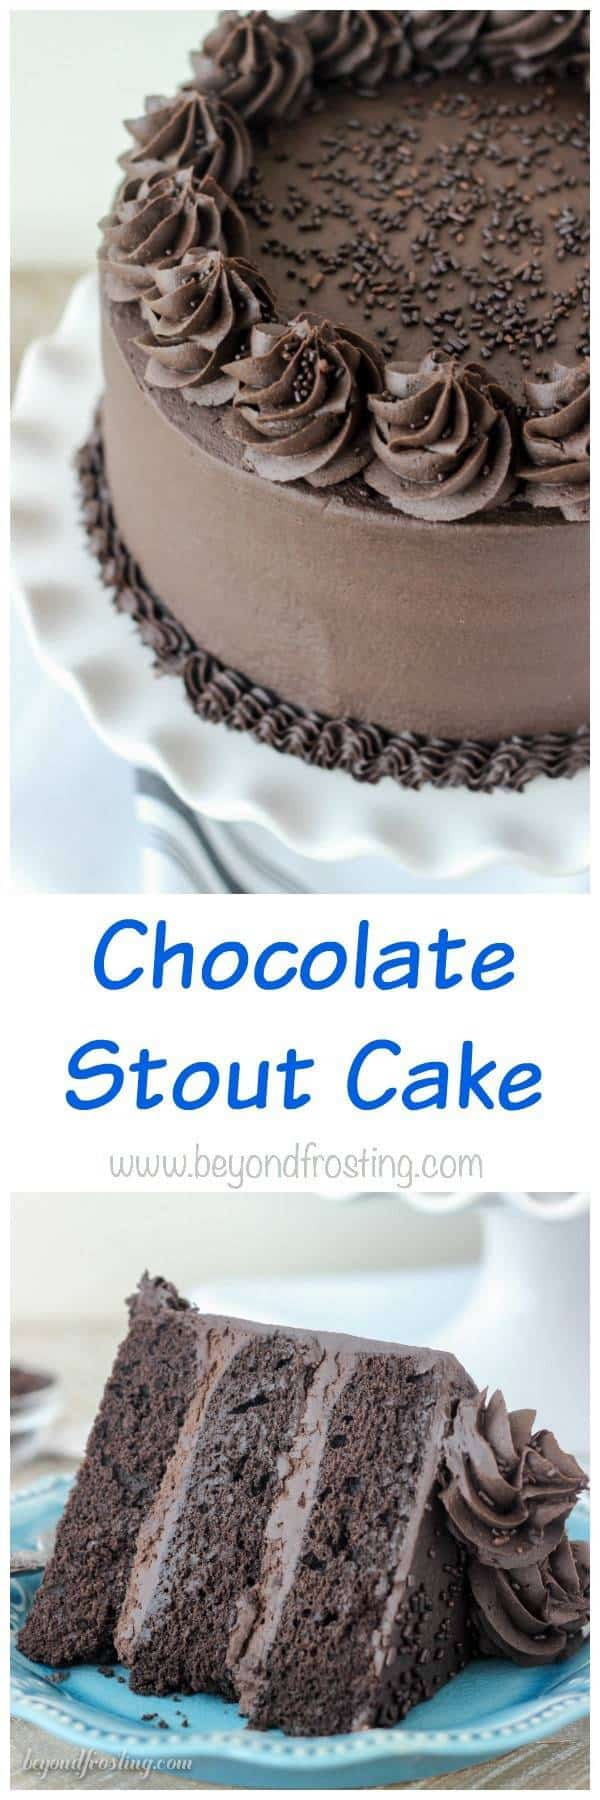 """This Decedent Chocolate Stout Cake is a dark chocolate cake spiked with chocolate stout beer. It's topped with a mouthwatering dark chocolate frosting. This rich chocolate cake is best accompanied by a big glass of milk."